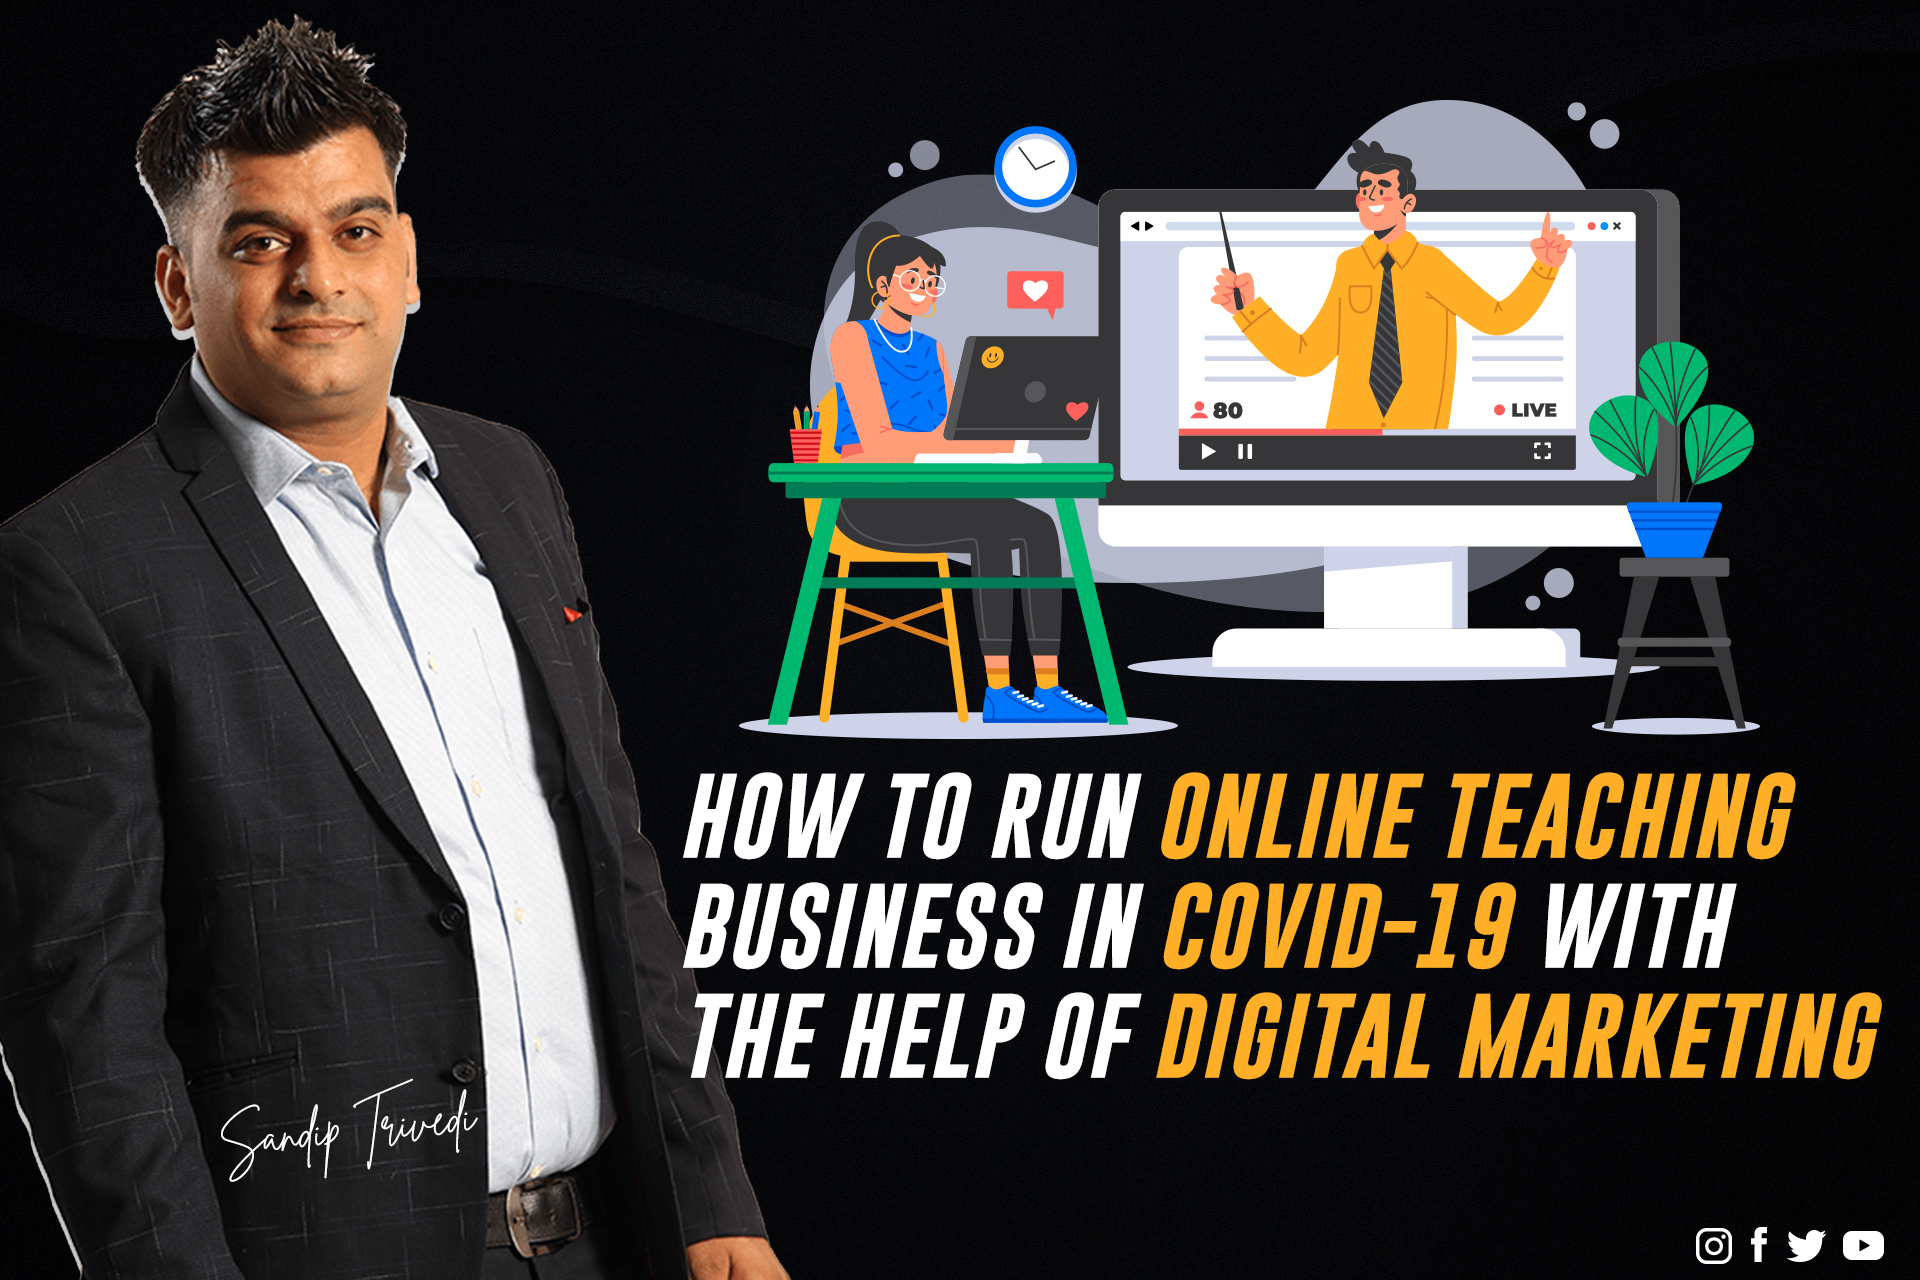 Online teaching business in covid-19 blog